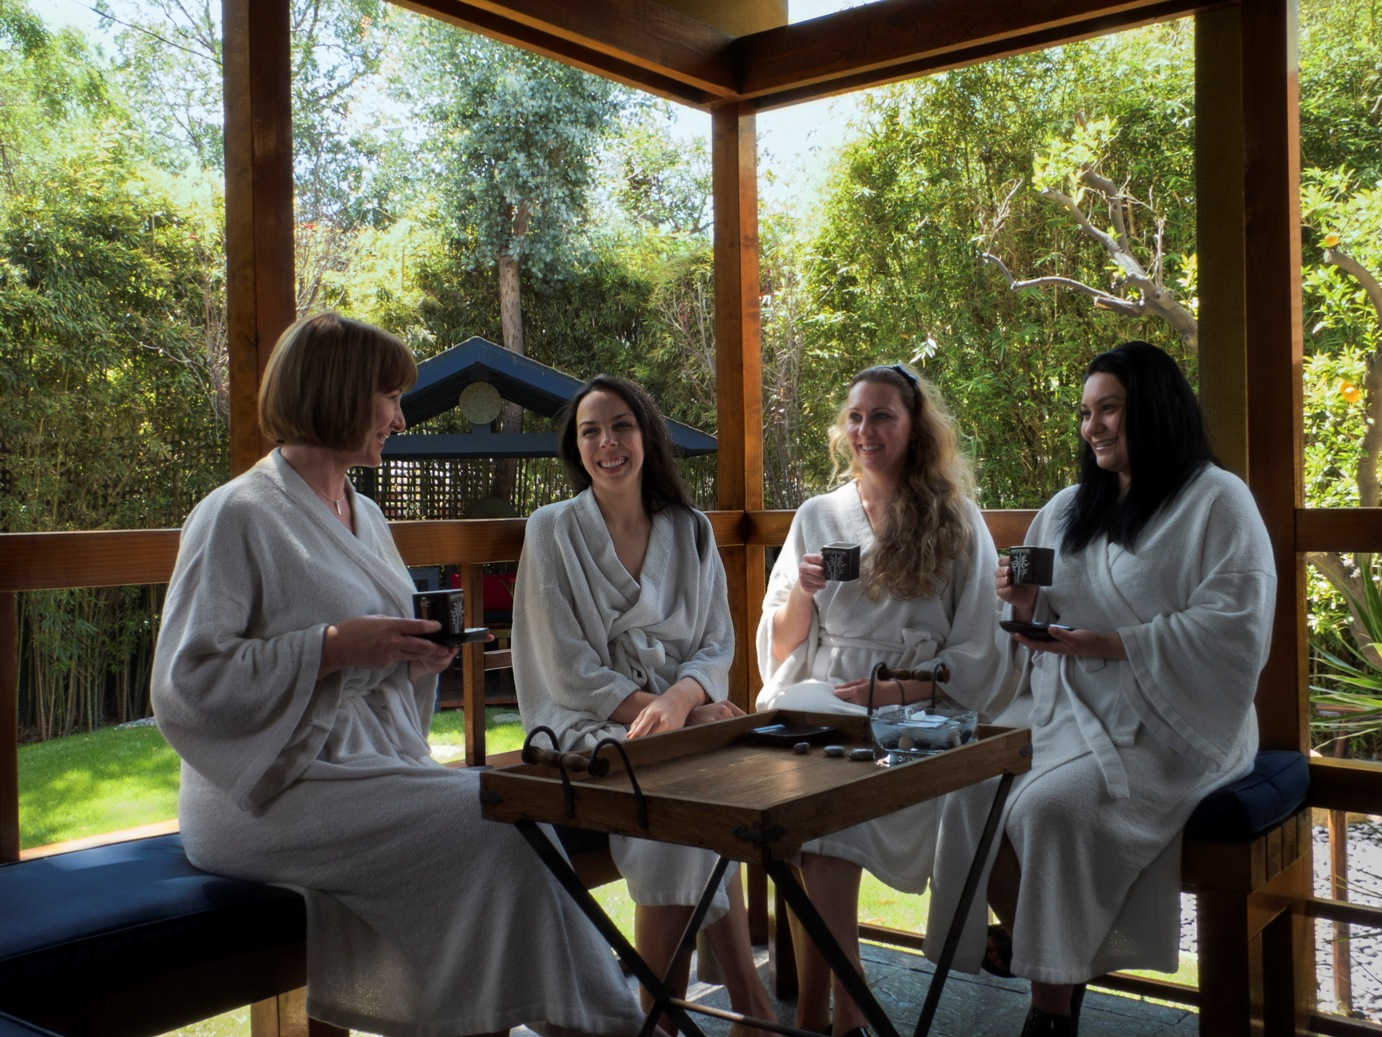 spa specials in orange county